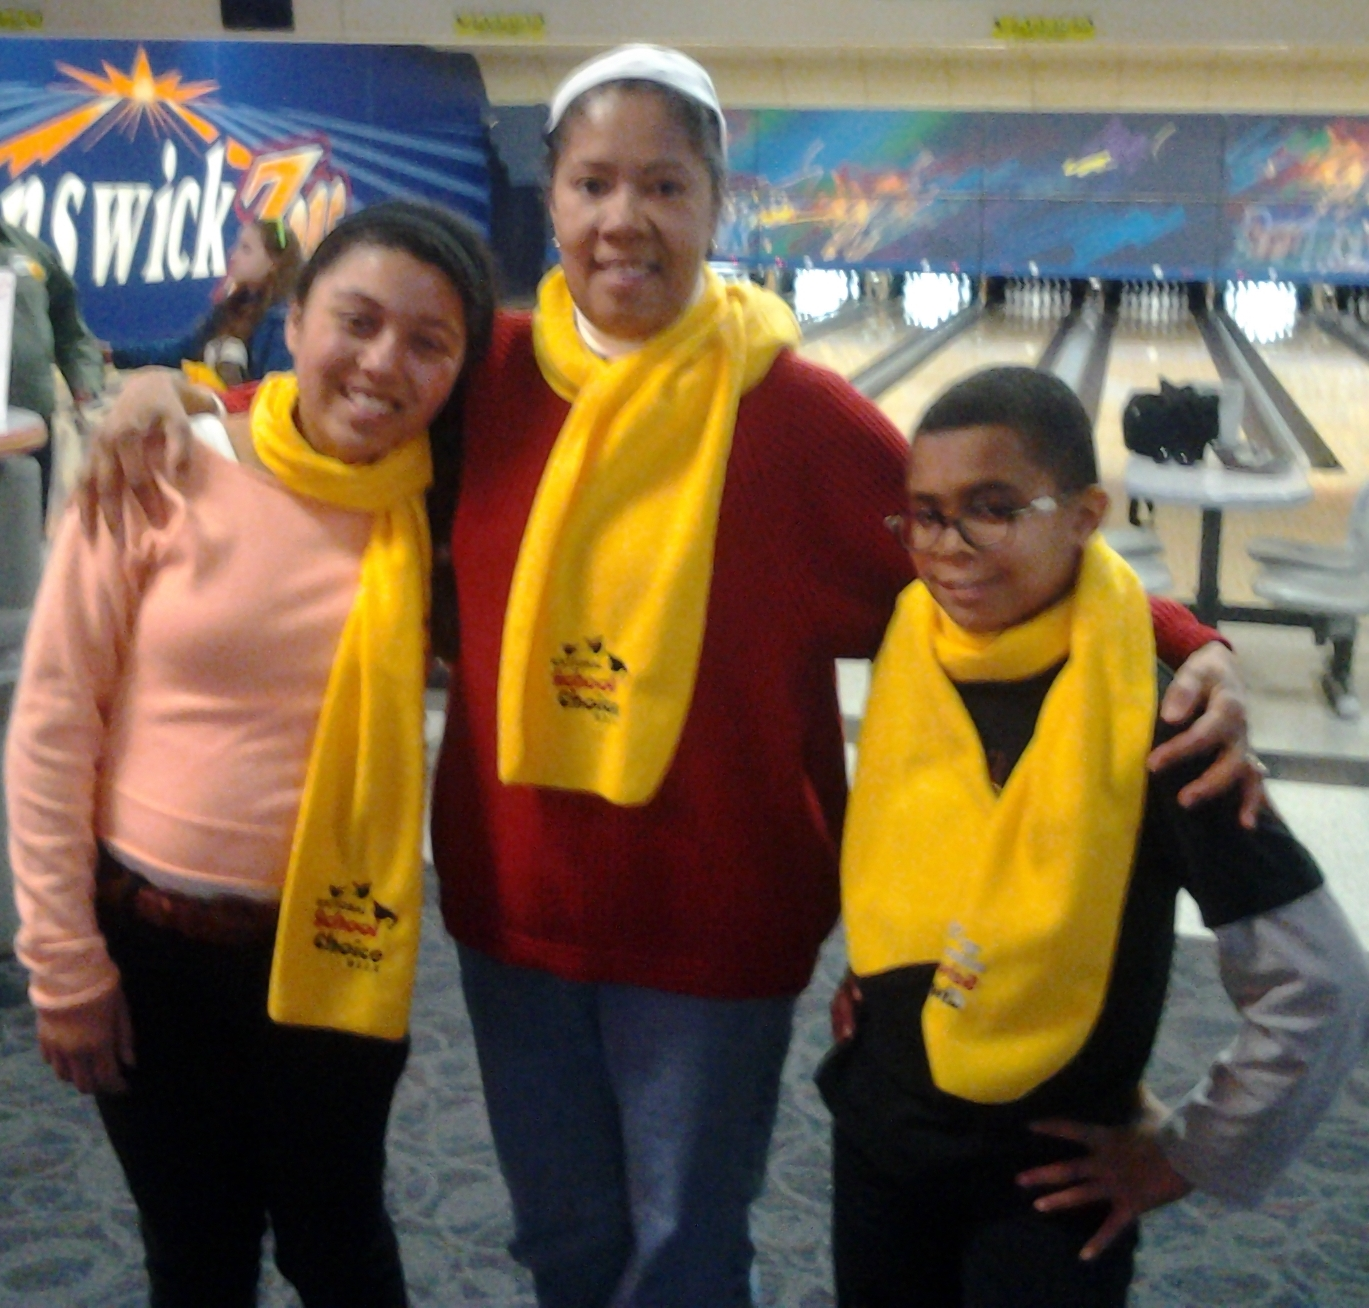 Photo of a teacher with 2 students from School Choice North Ridgeville